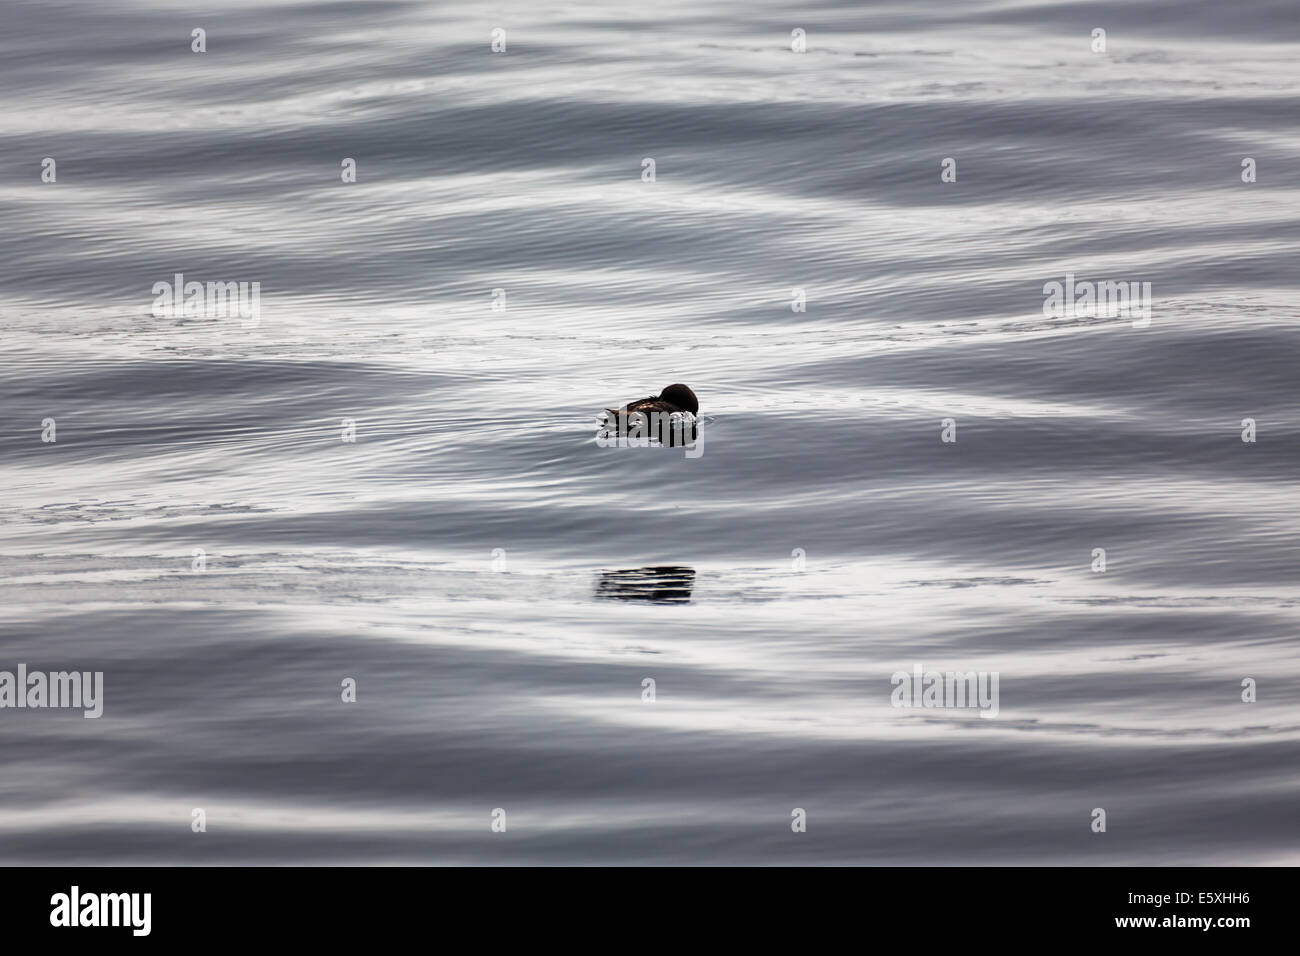 Ocean bird riding the waves in the morning light with reflection riding along - Stock Image